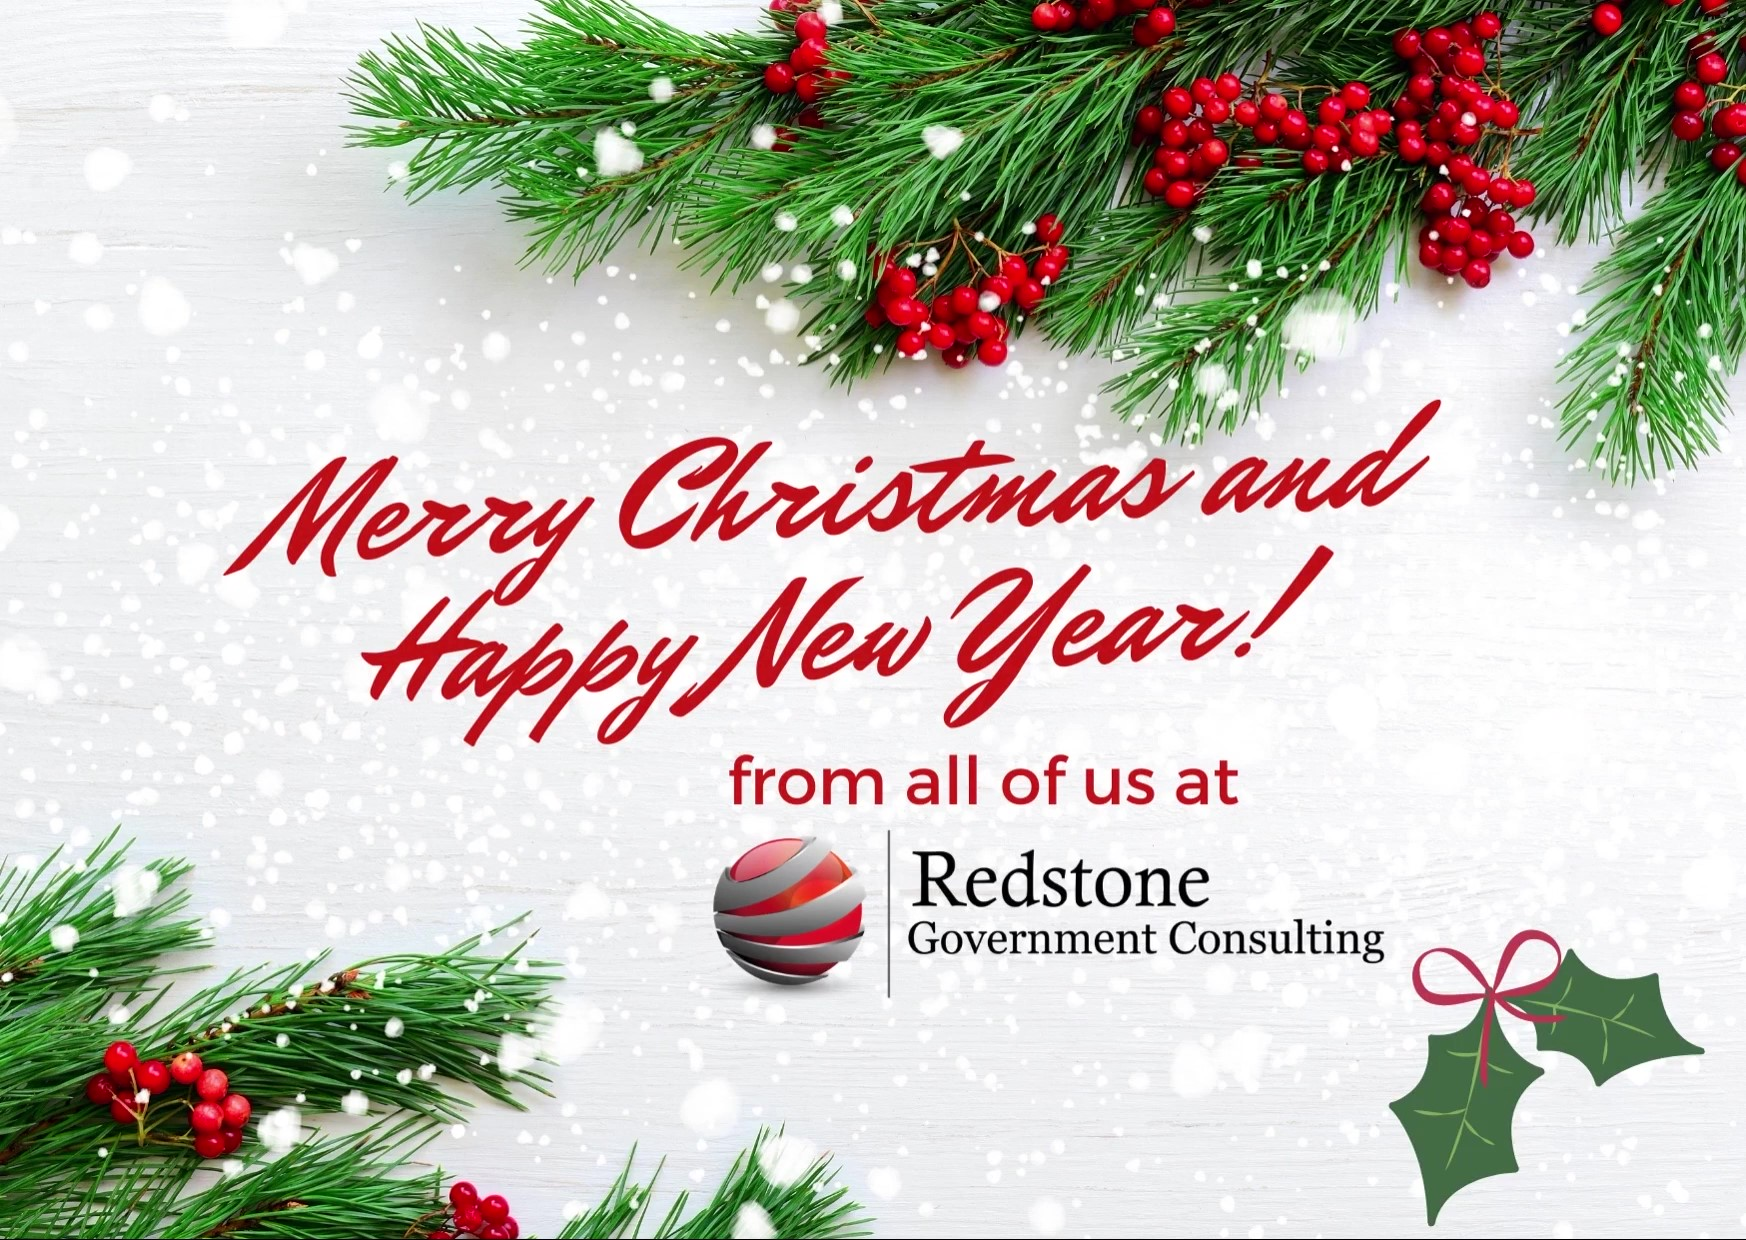 Merry Christmas and Happy New Year - Redstone gci